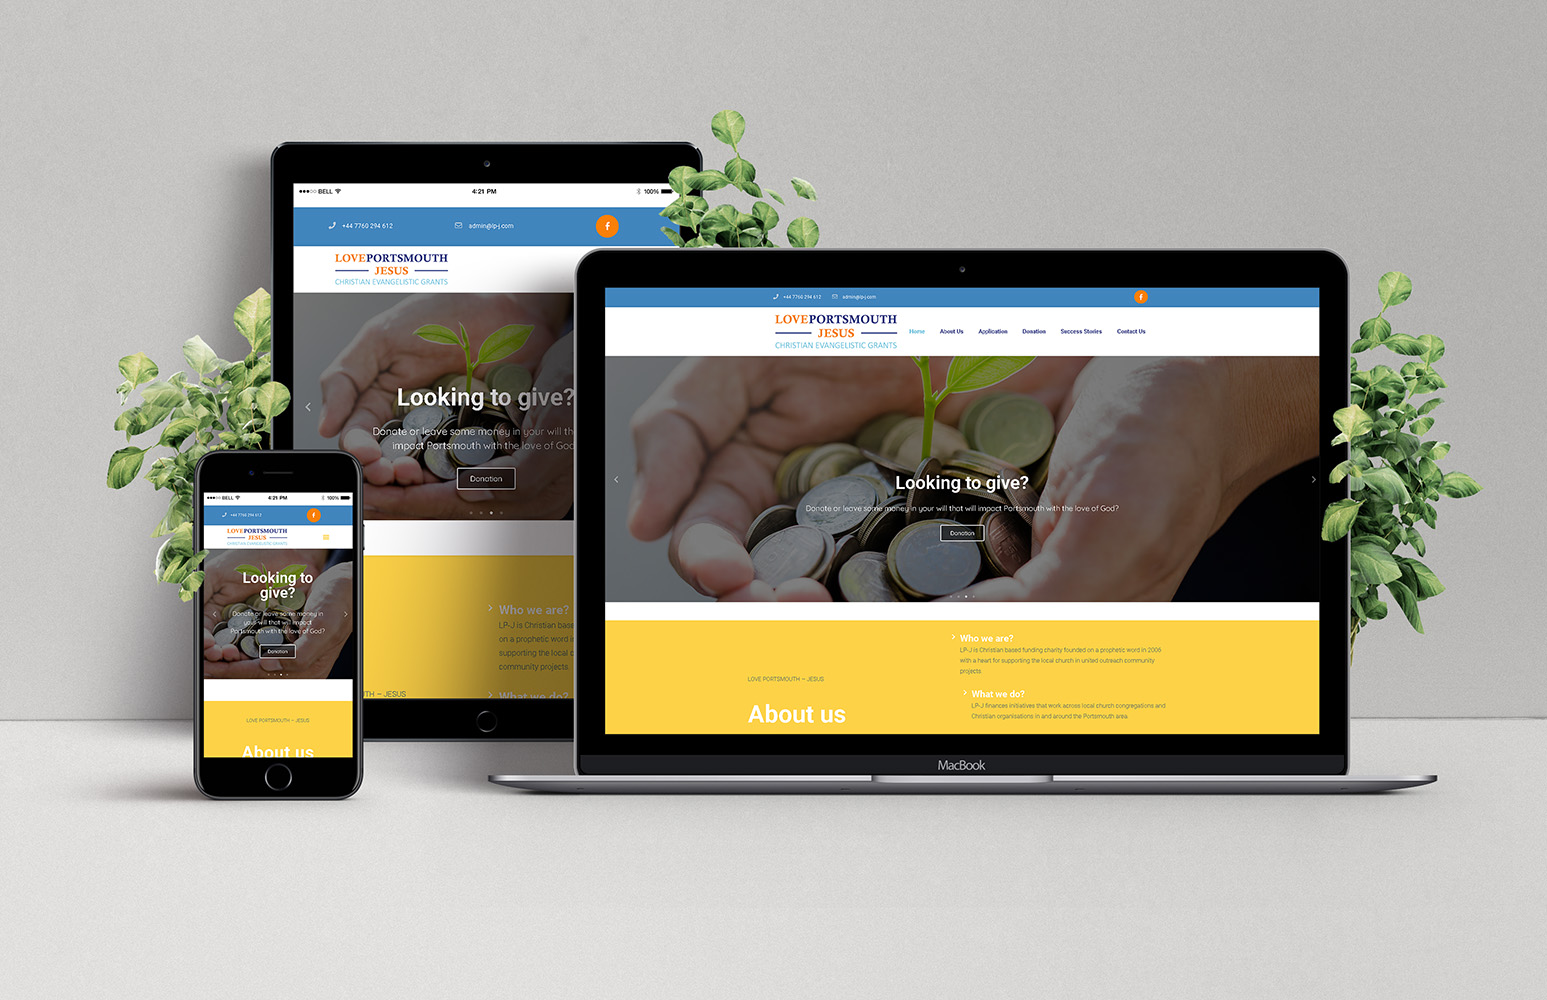 Love Portsmouth – Jesus: Responsive Web Design